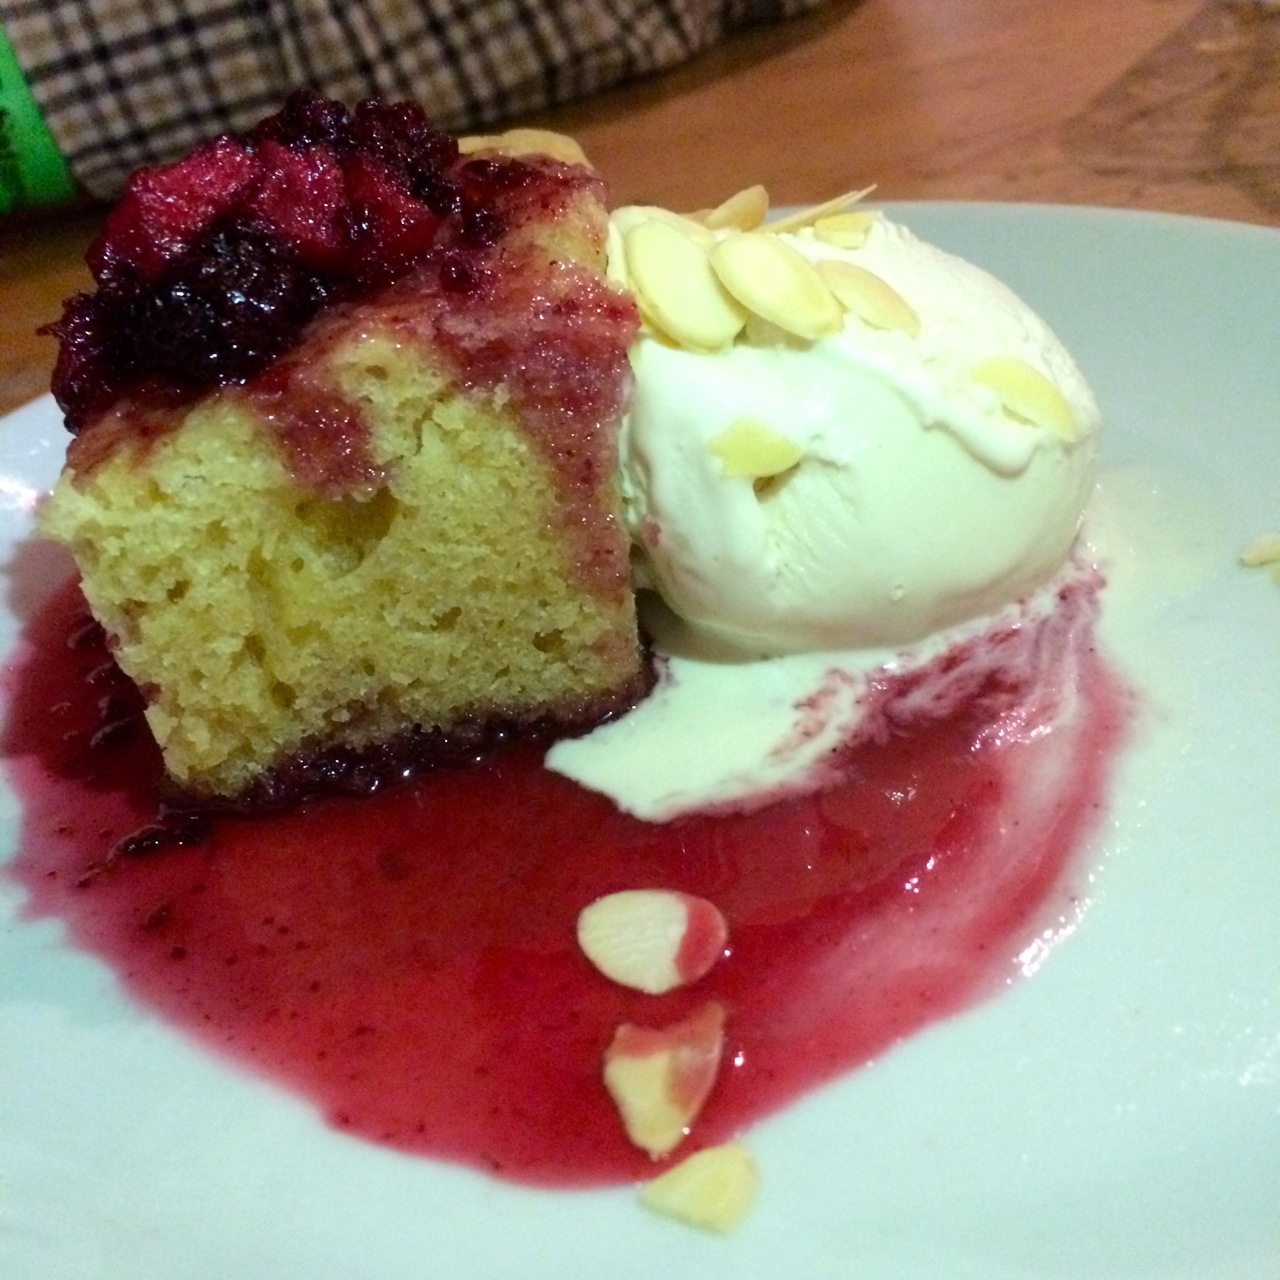 https://i1.wp.com/fatgayvegan.com/wp-content/uploads/2015/12/Bakewell-cake-with-vegan-ice-cream.jpg?fit=1280%2C1280